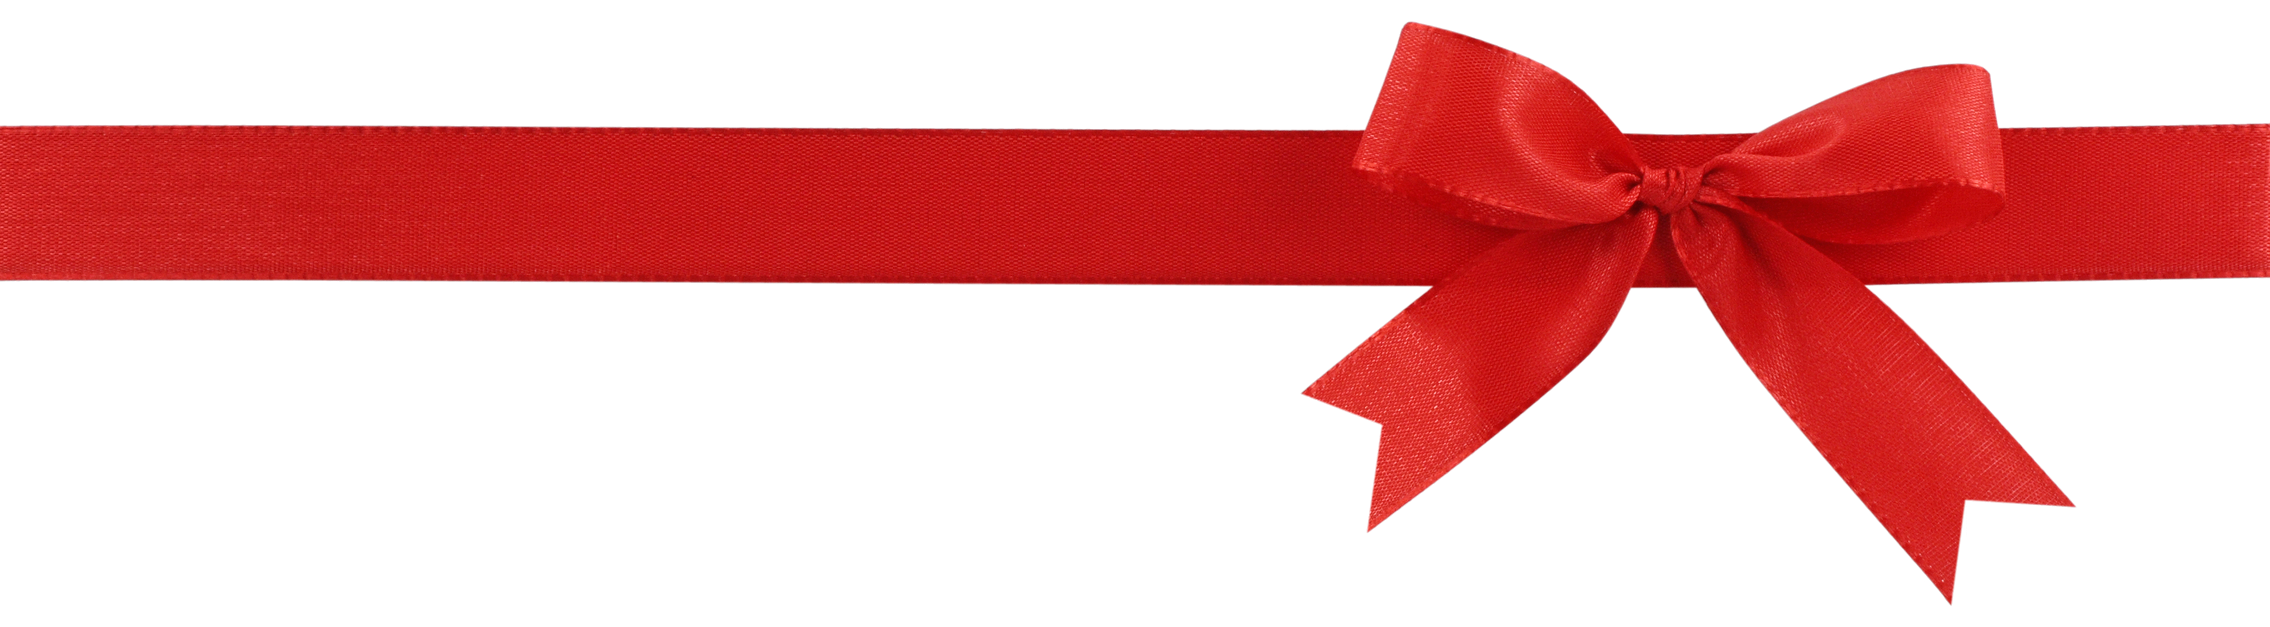 Gift Ribbon PNG Image - Red Christmas Bow PNG HD